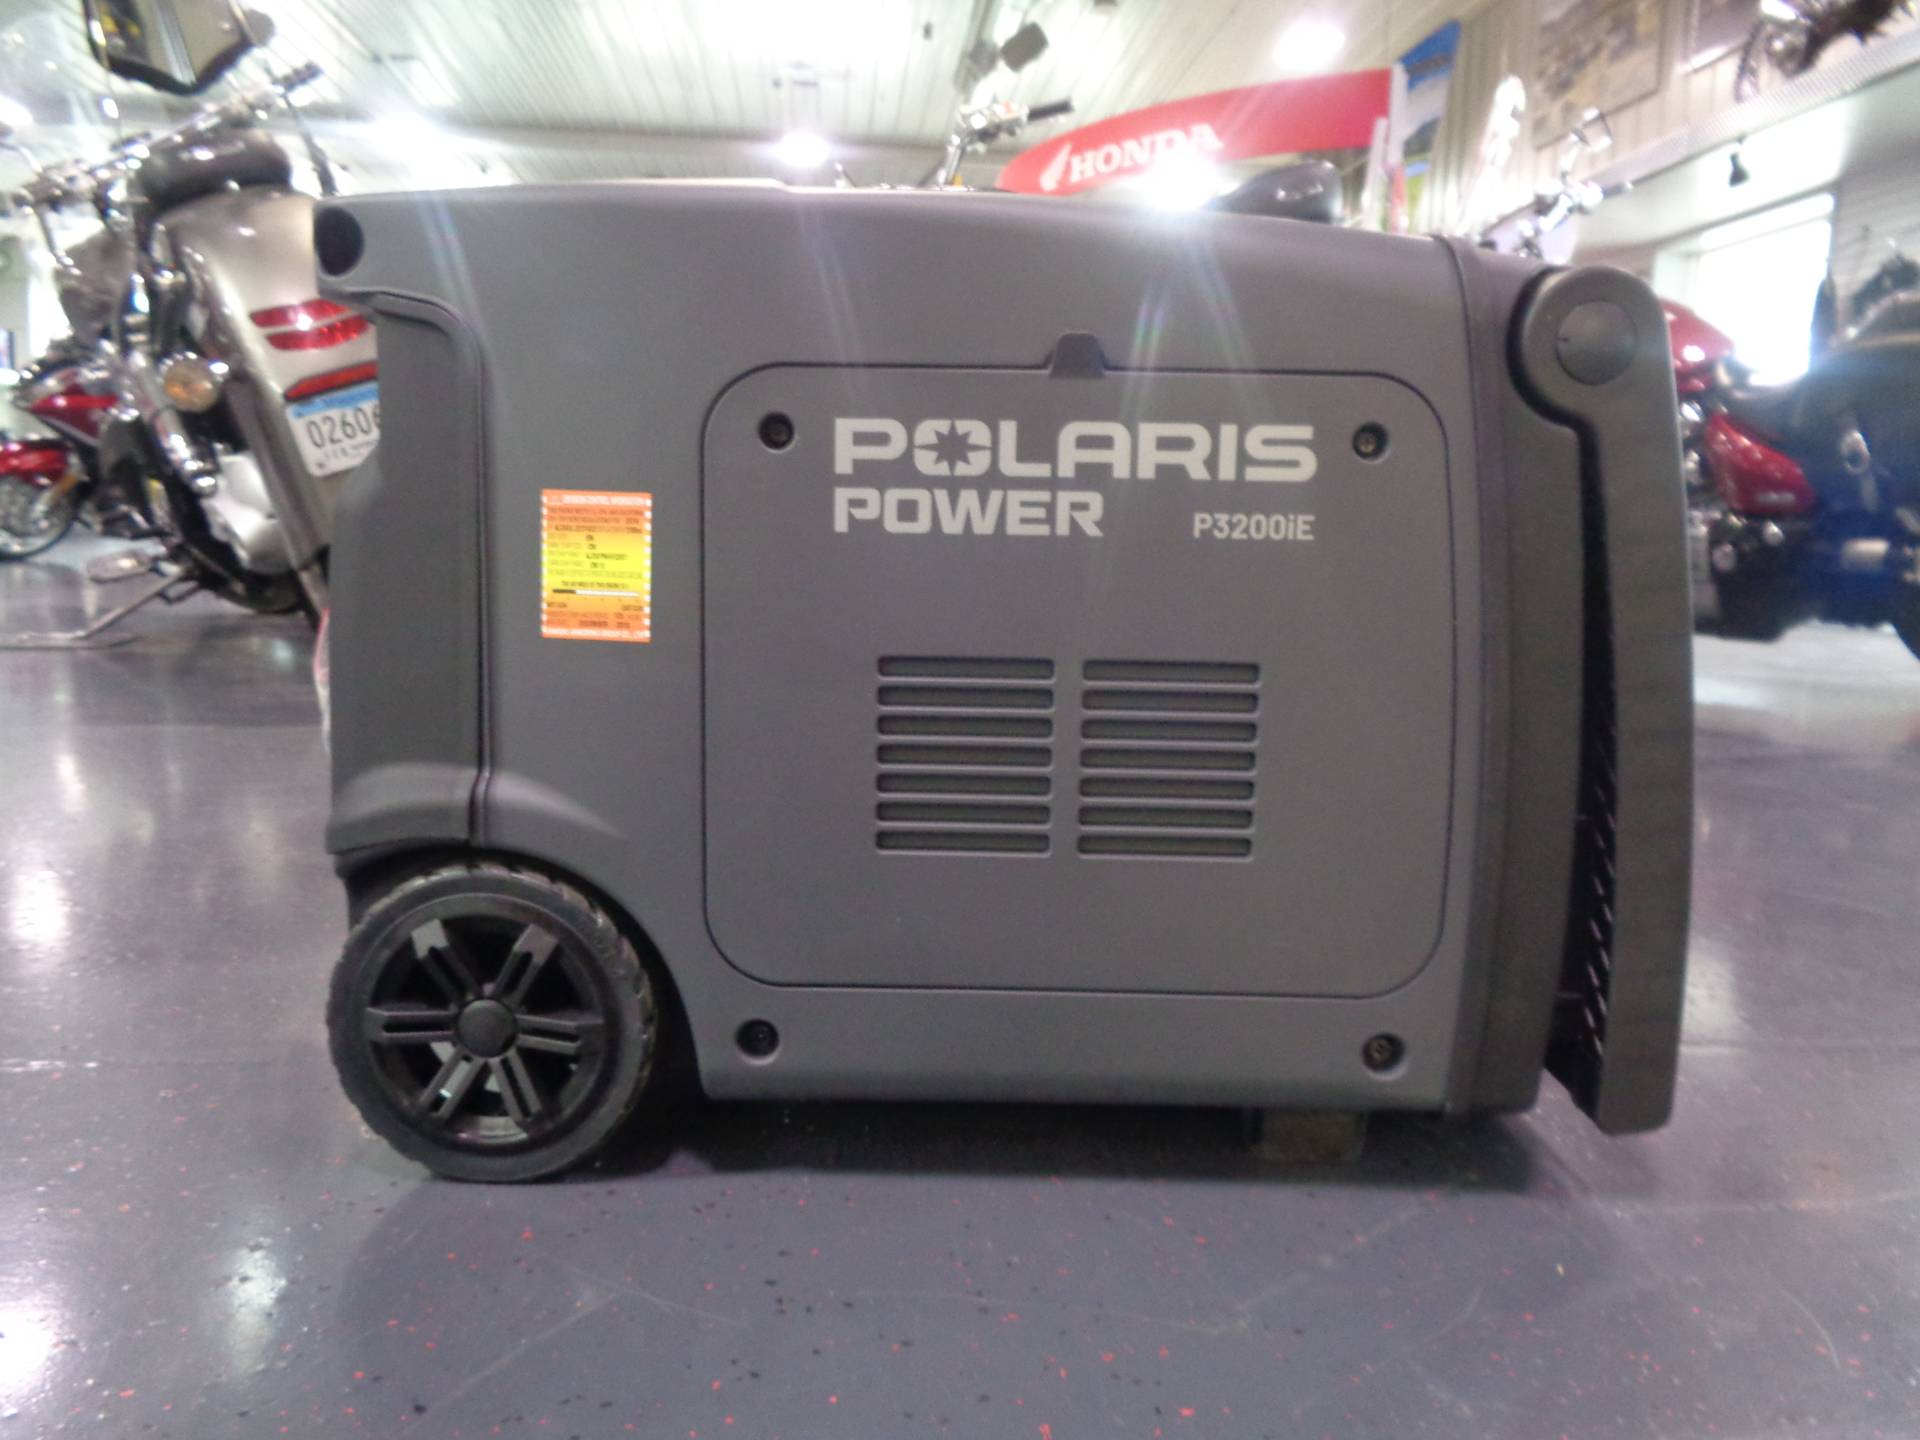 Polaris Power P3200iE Polaris Power Portable Inverter Generator in Delano, Minnesota - Photo 2